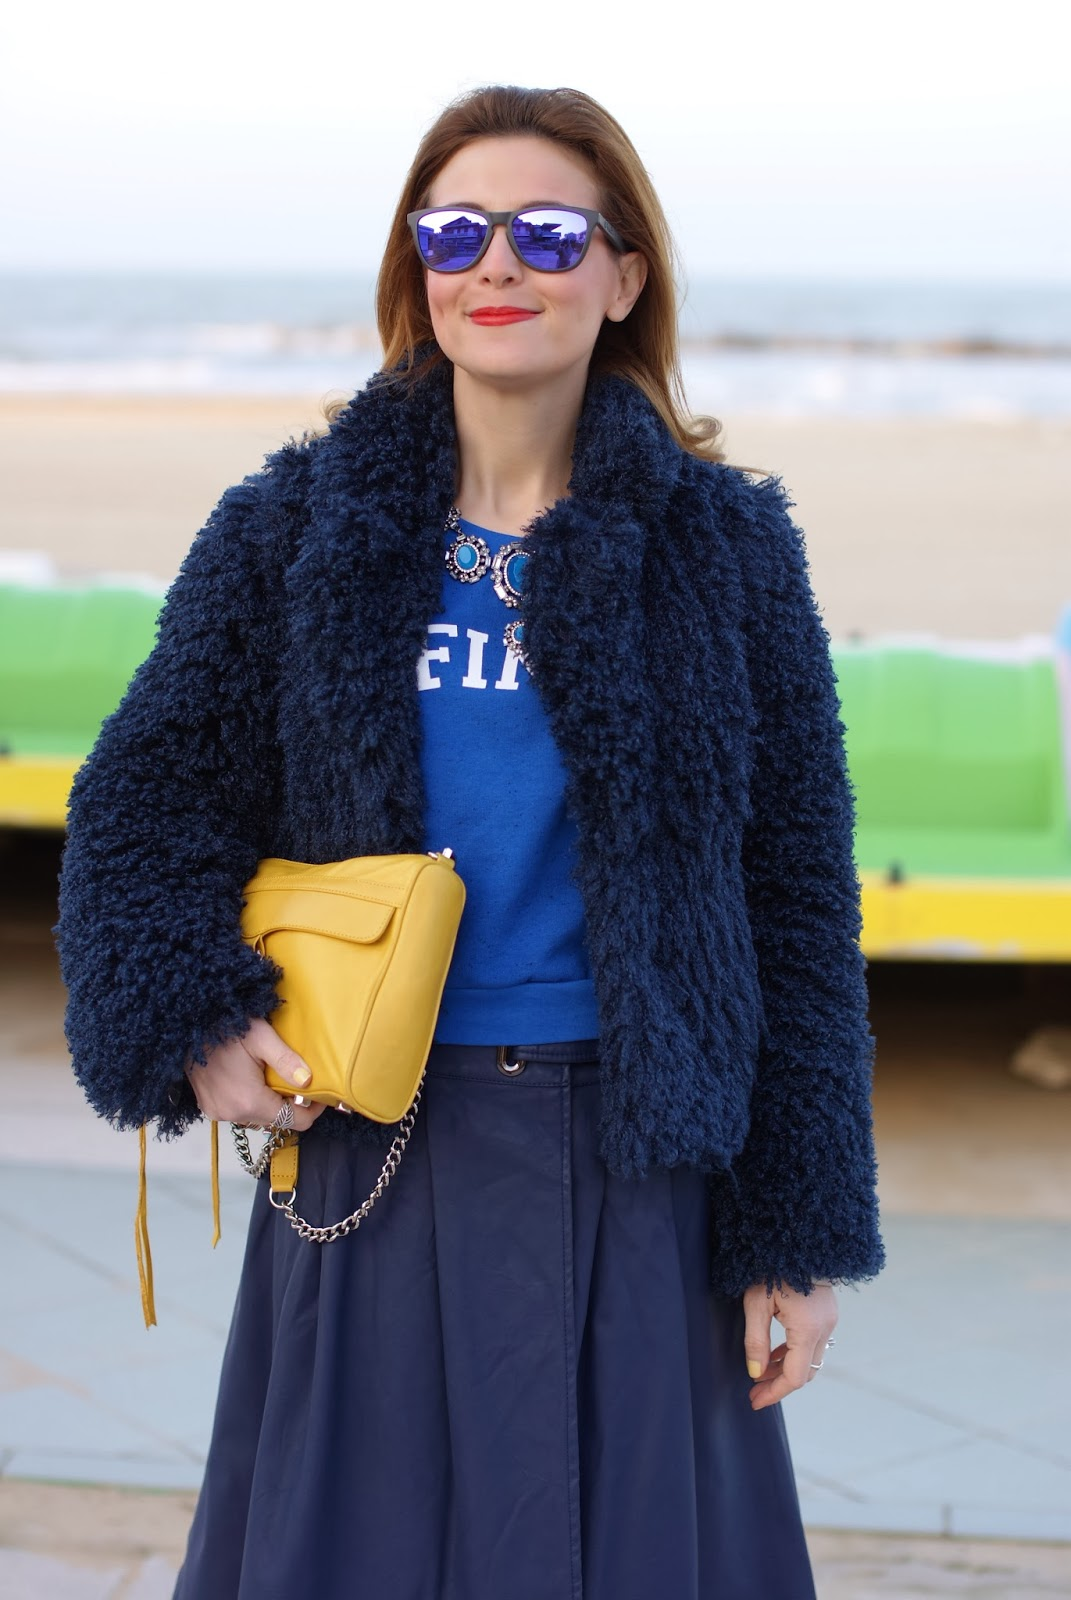 Blue faux fur jacket, yellow Rebecca Minkoff M.A.C. clutch, Fashion and Cookies, fashion blogger